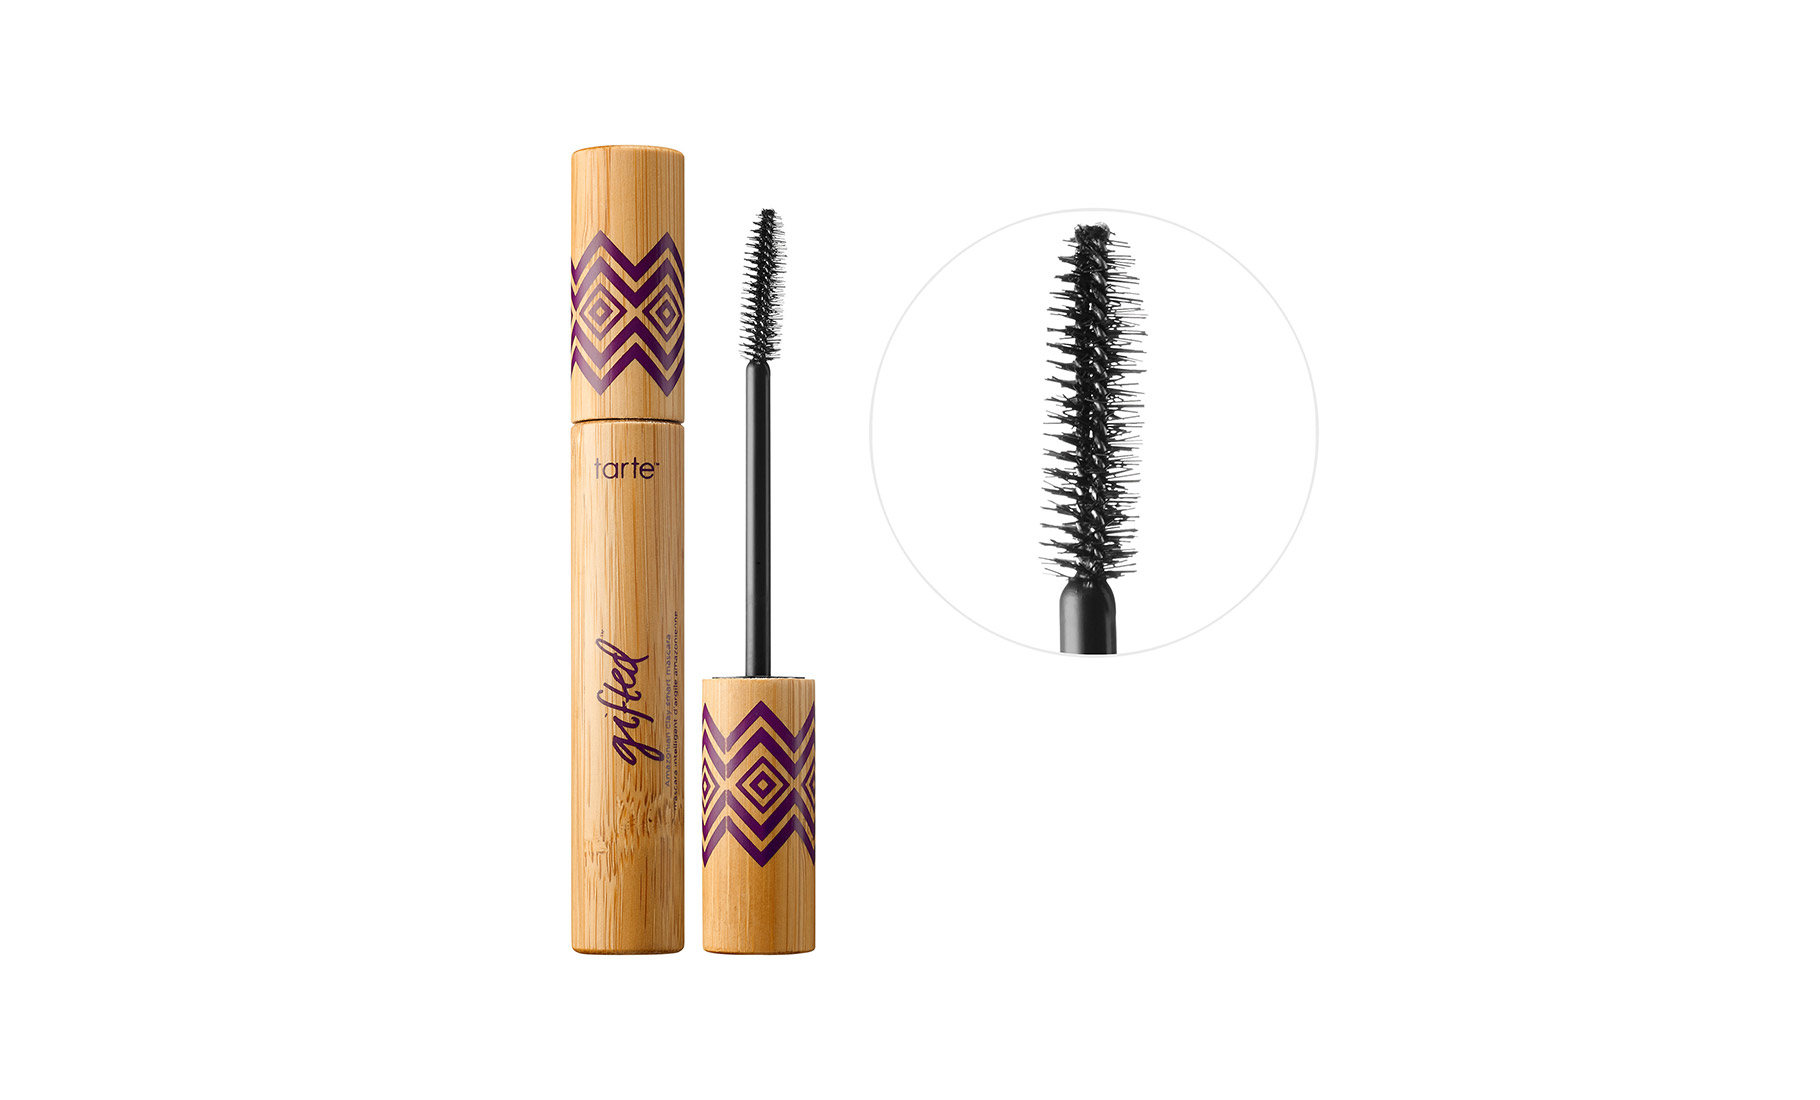 Tarte Gifted Amazonian Clay Mascara